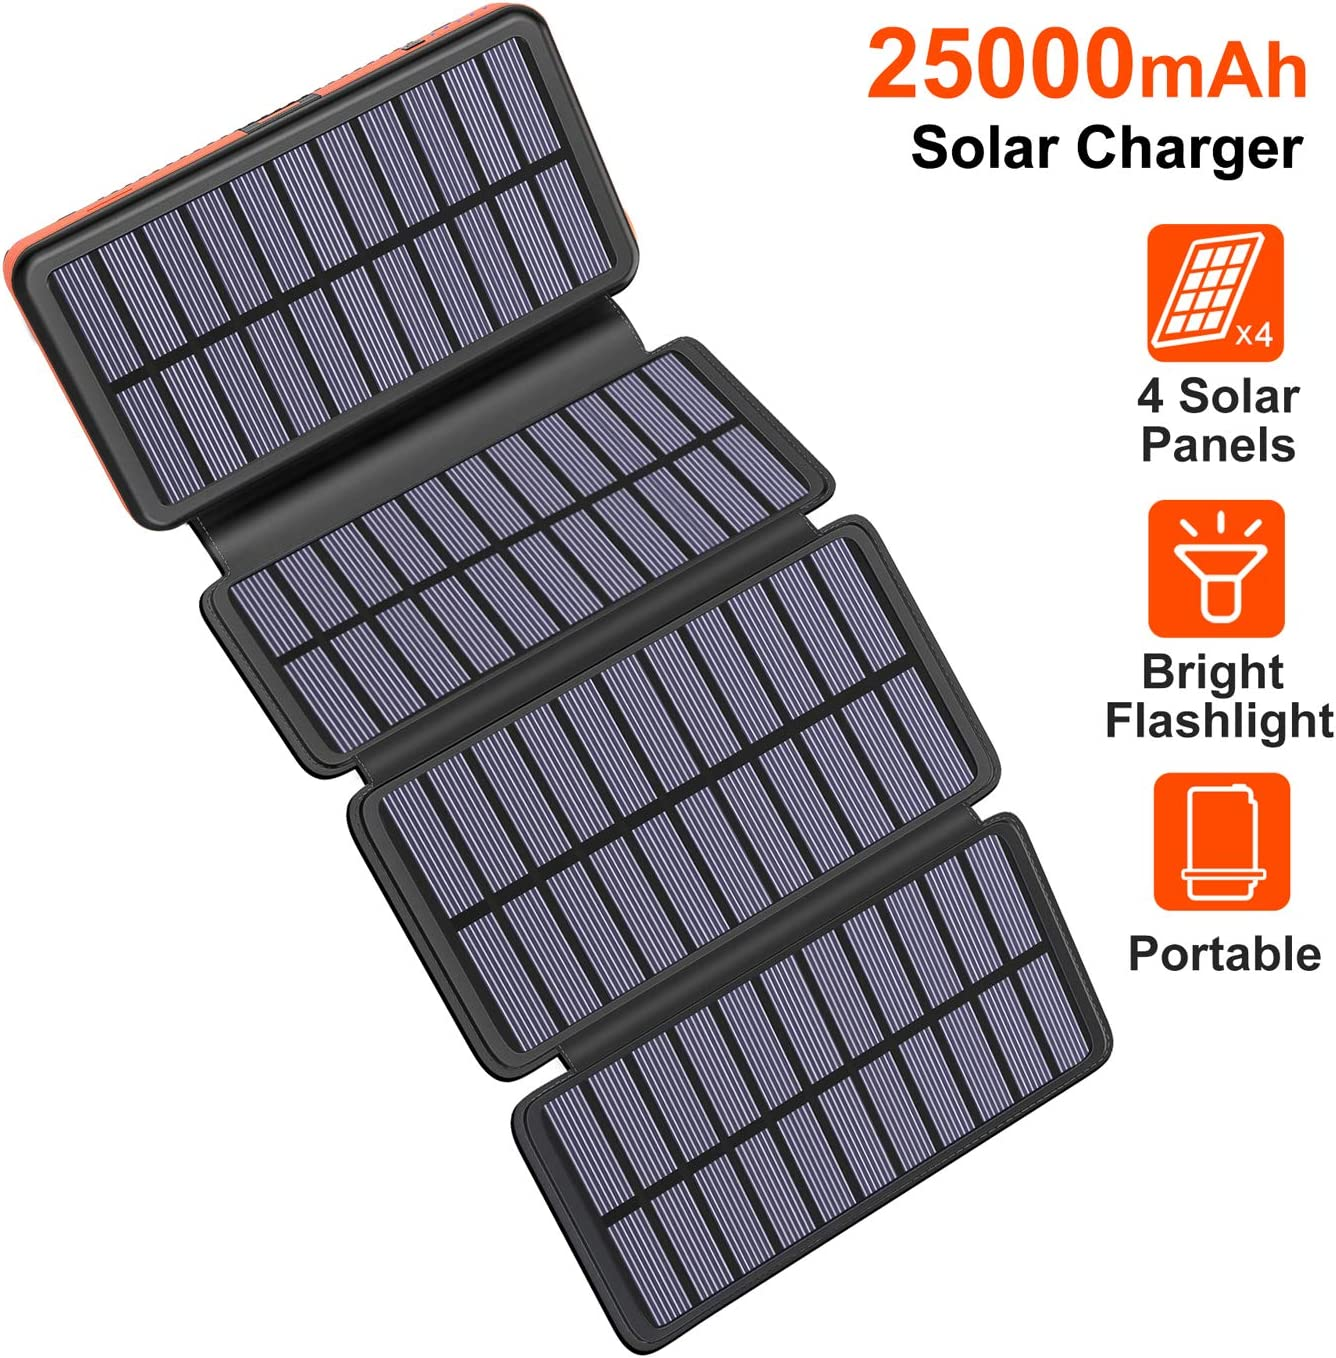 Solar Charger 25000mAh, Riapow Solar Power Bank with 4 Solar Panels and Dual USB & Type-C Input for Smart Phones, ipad and Laptop, Outdoor Waterproof